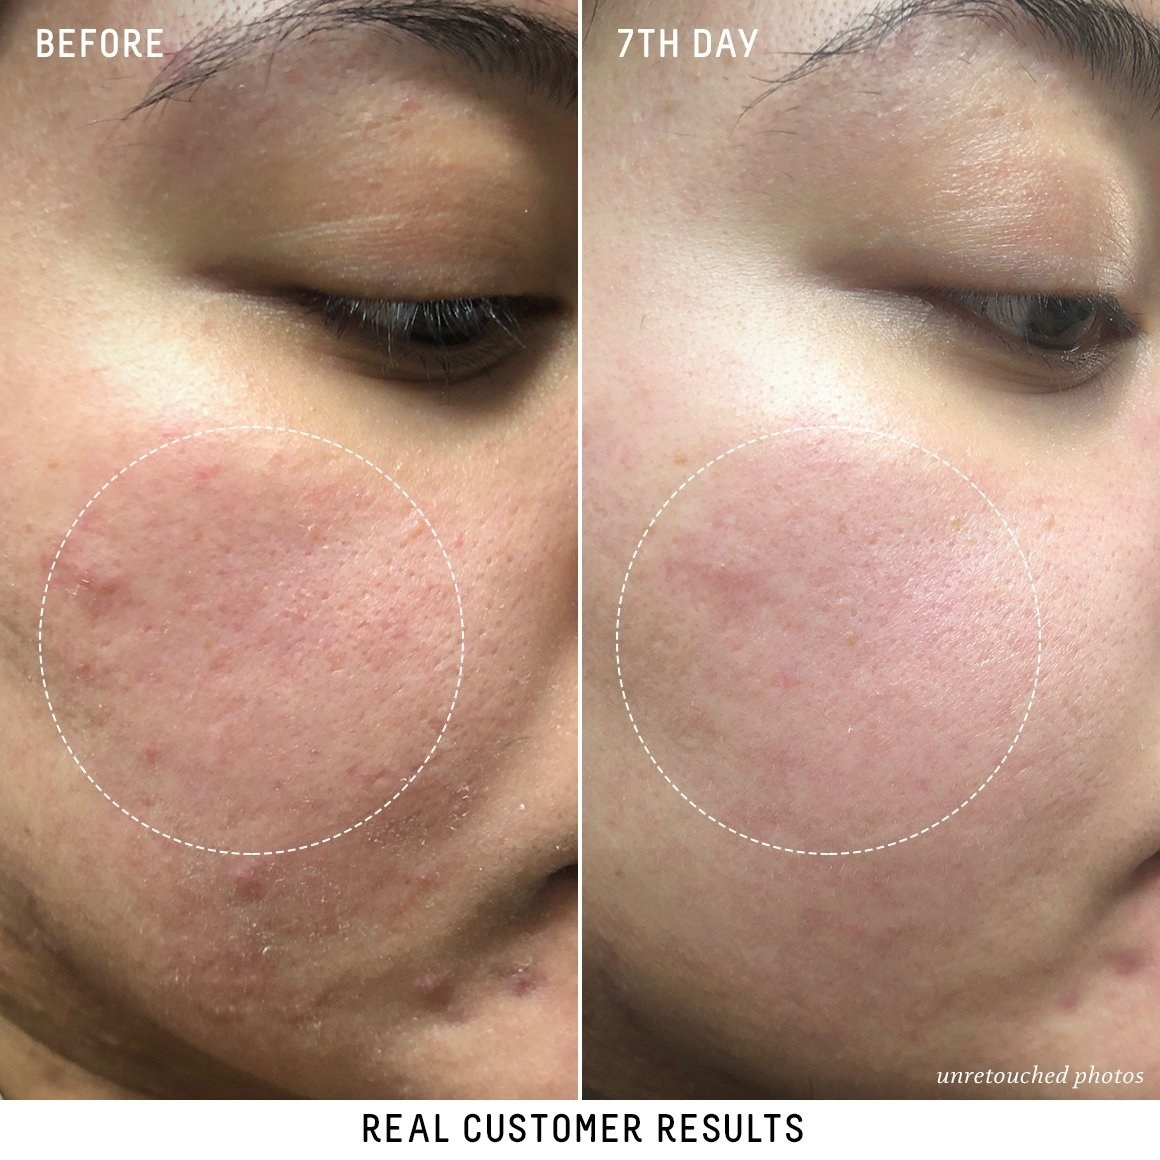 Reviewer before and after showing the serum reduced texture and redness